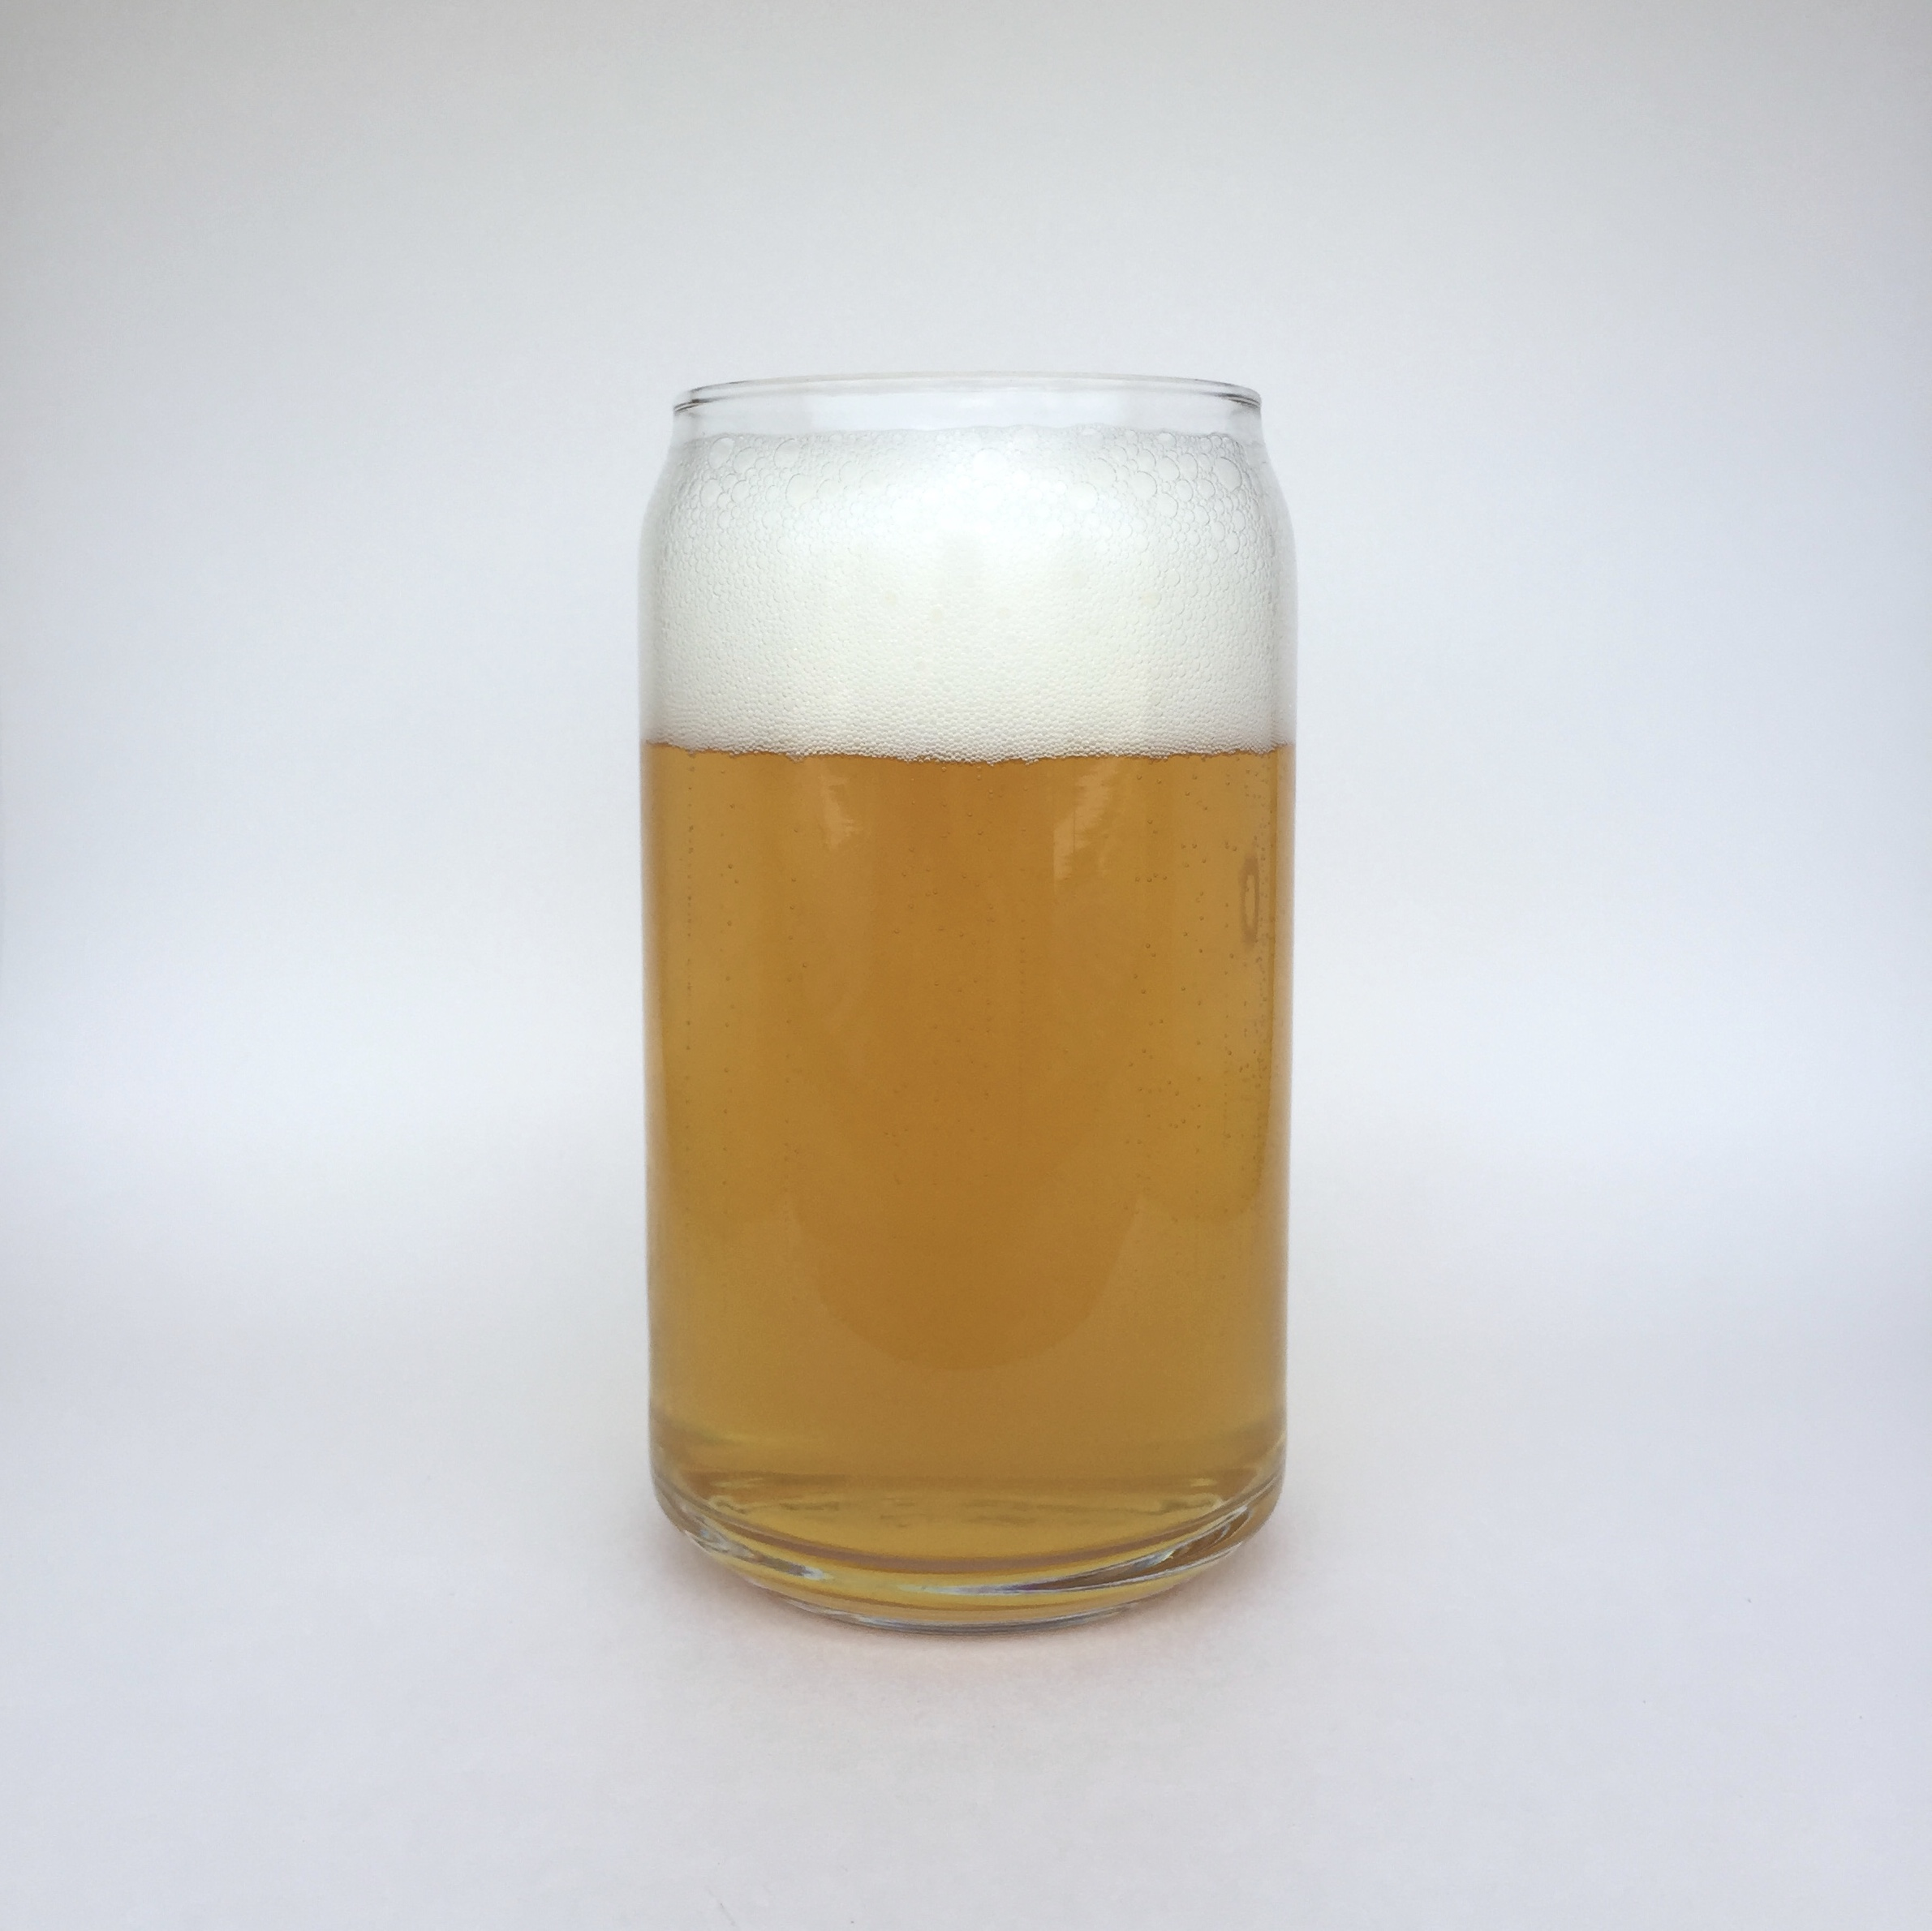 Strawberry Blonde is a crisp, low-alcohol beer that is an easy-drinking and highly-poundable thirst quencher.